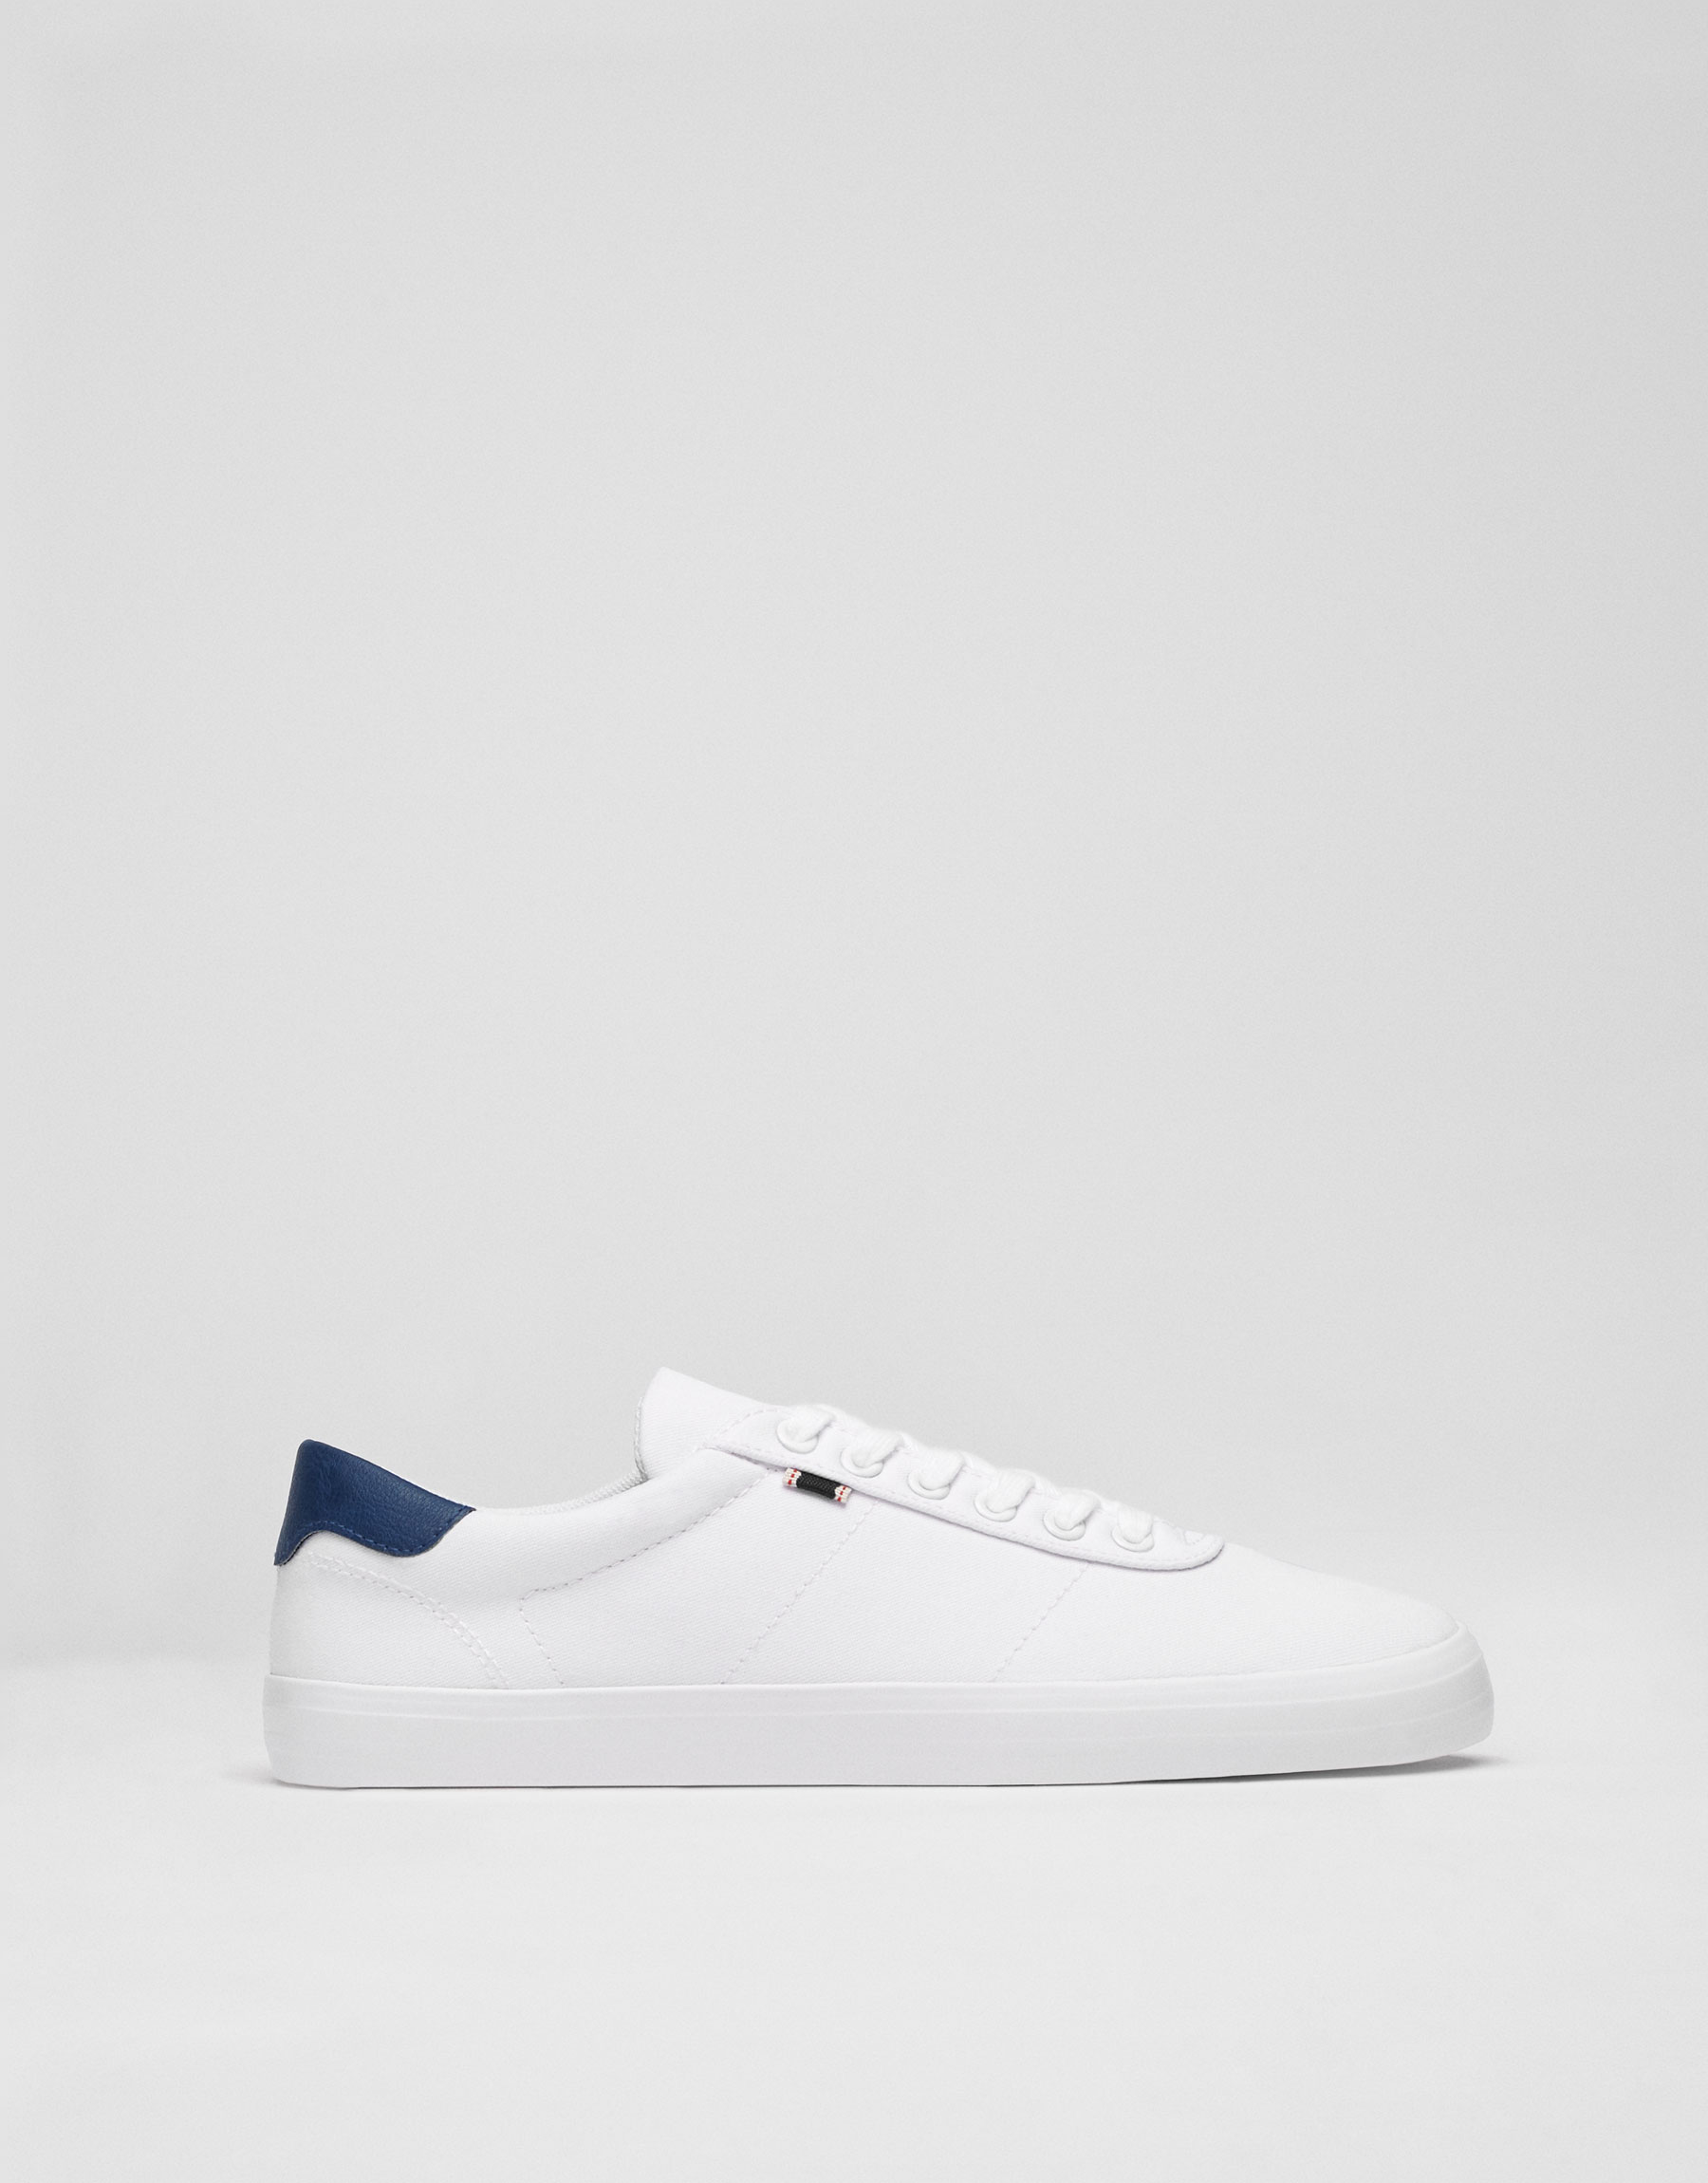 Basic white sneakers with label